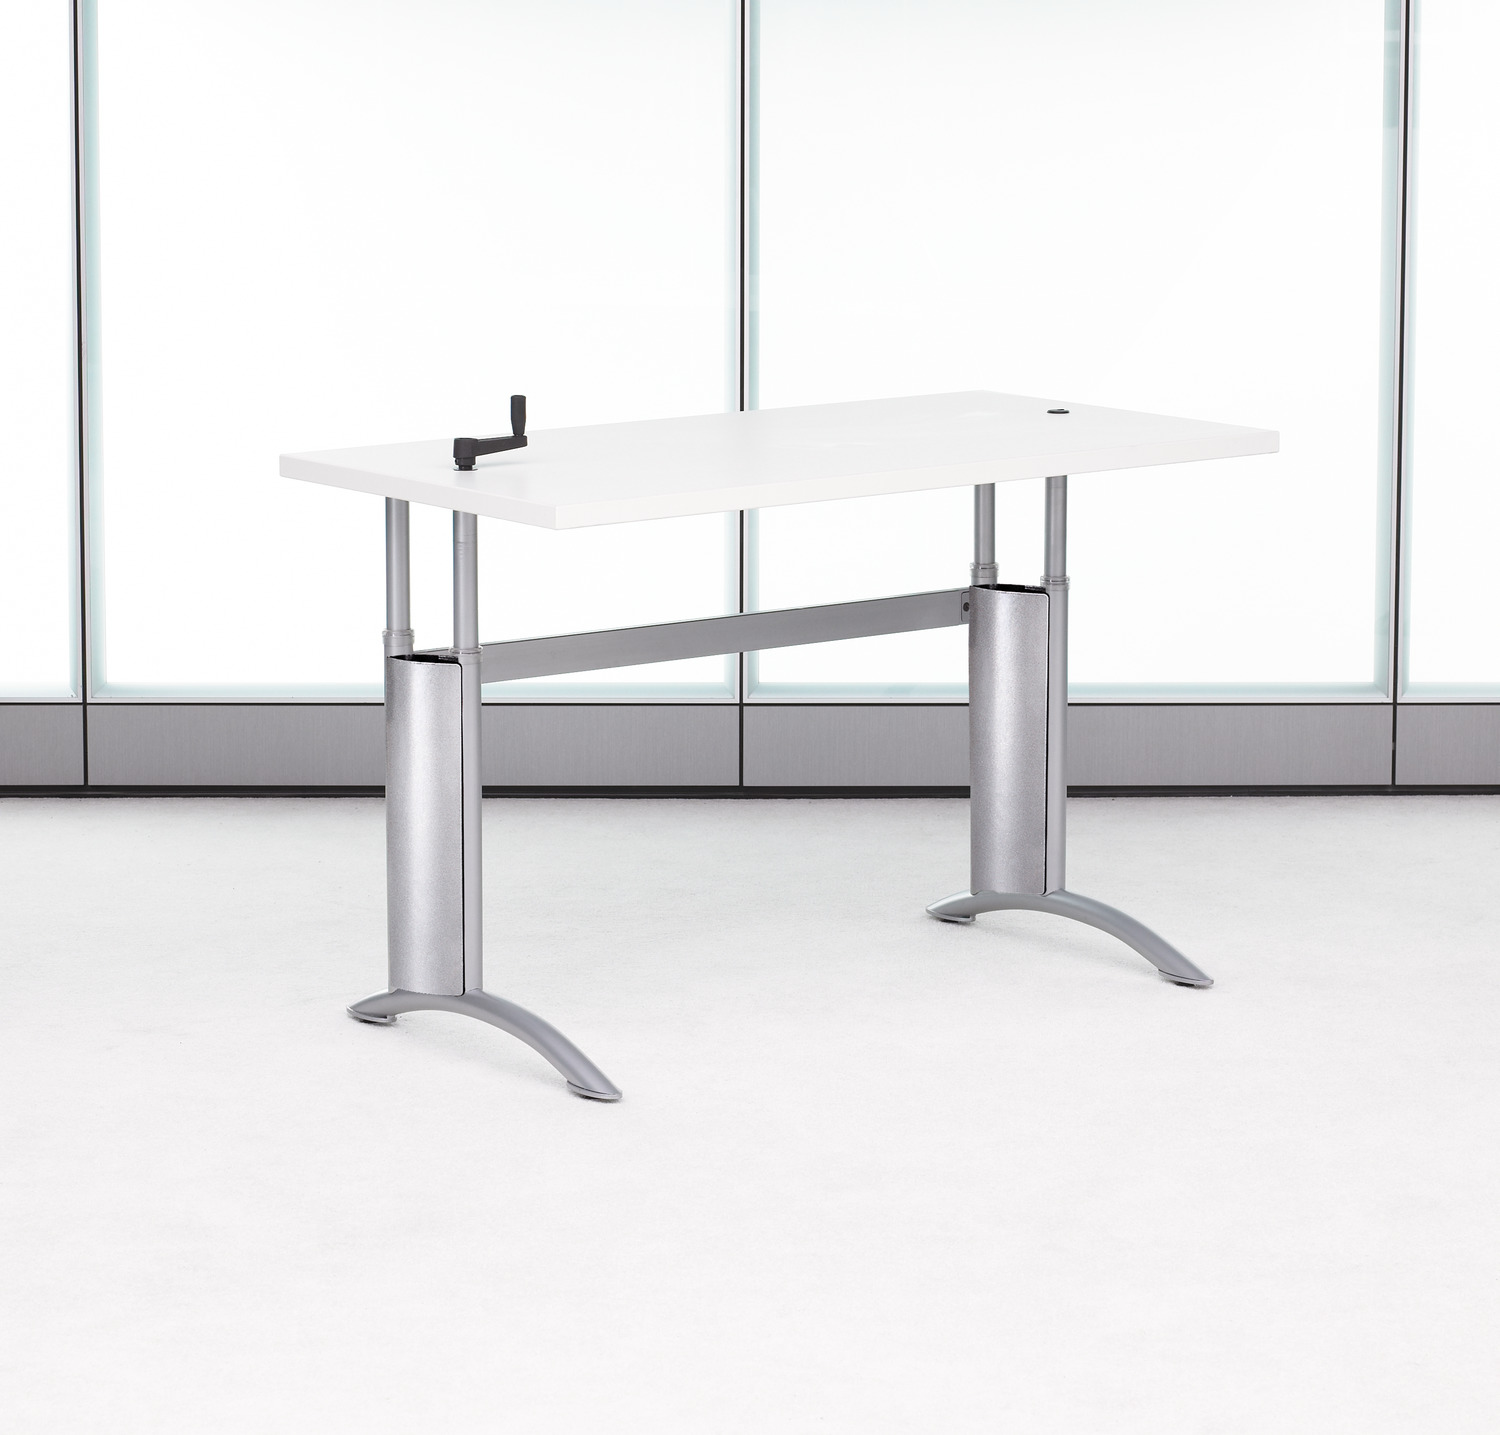 Expansion Training Tables Gallery - Adjustable height training table